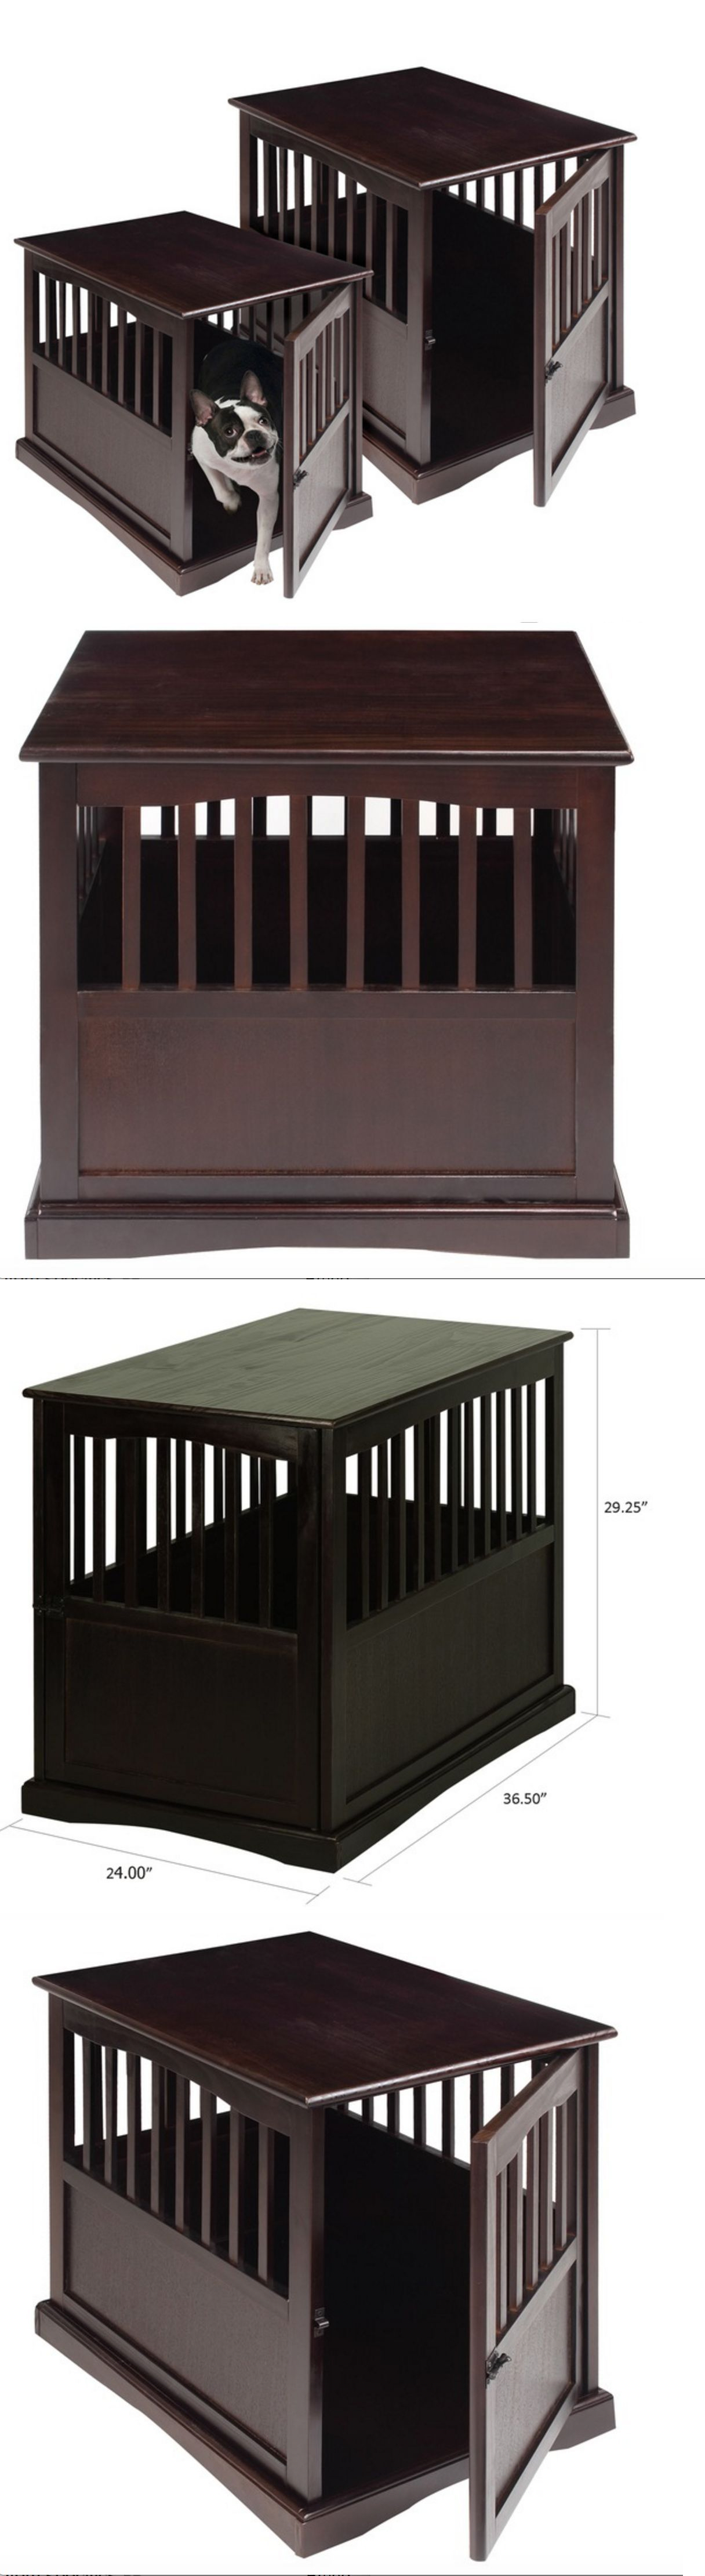 Dog Houses 108884: Dog Crate End Table Furniture Pet House Indoor Kennels  Large Wooden Side